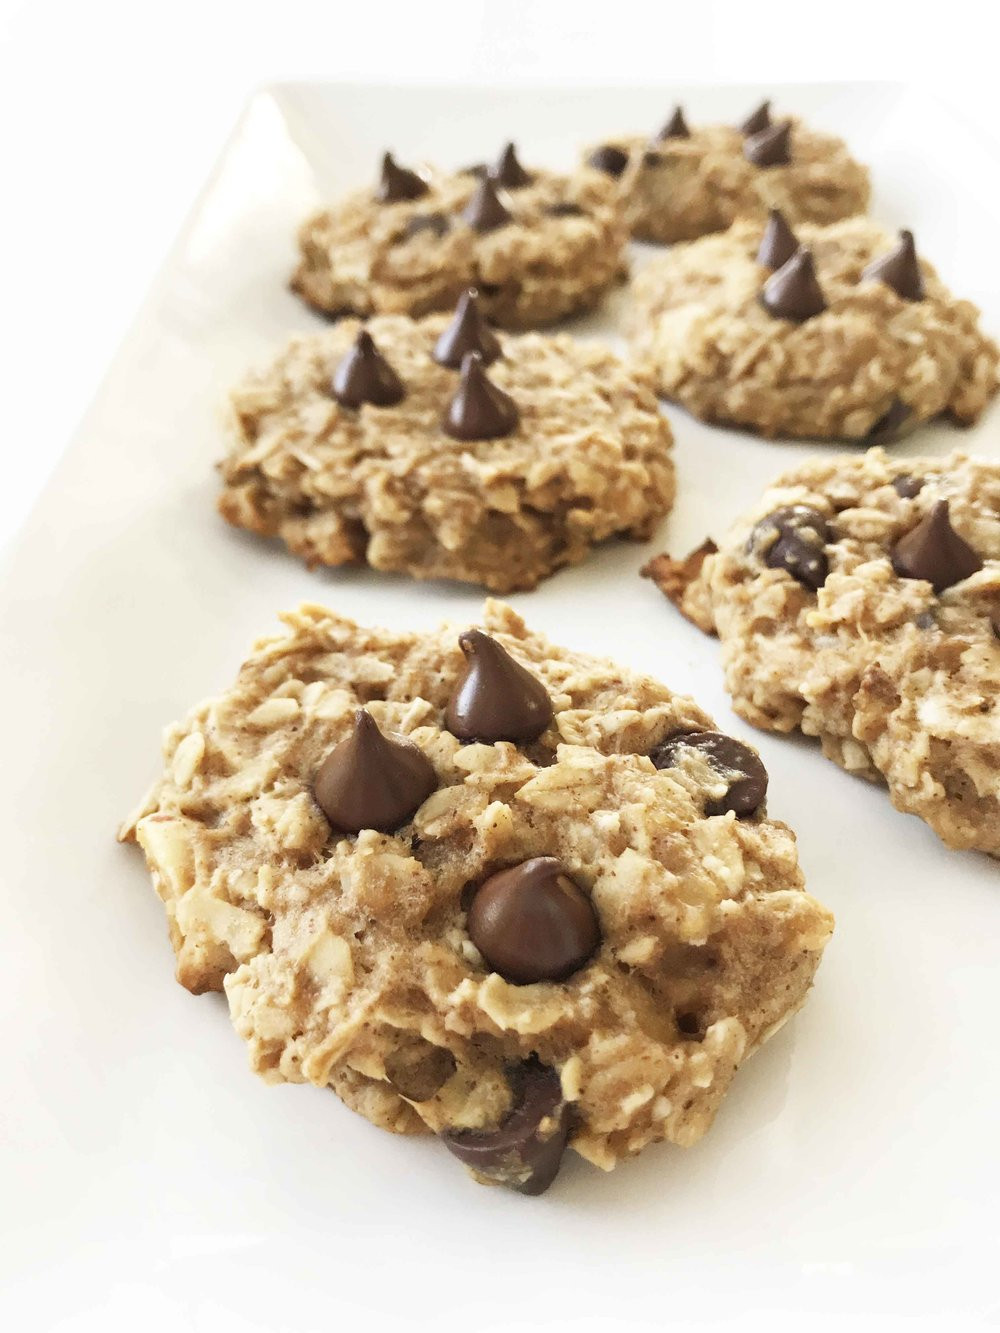 Healthy Oatmeal Peanut Butter Cookies  Healthy Peanut Butter Oatmeal Cookies — The Skinny Fork